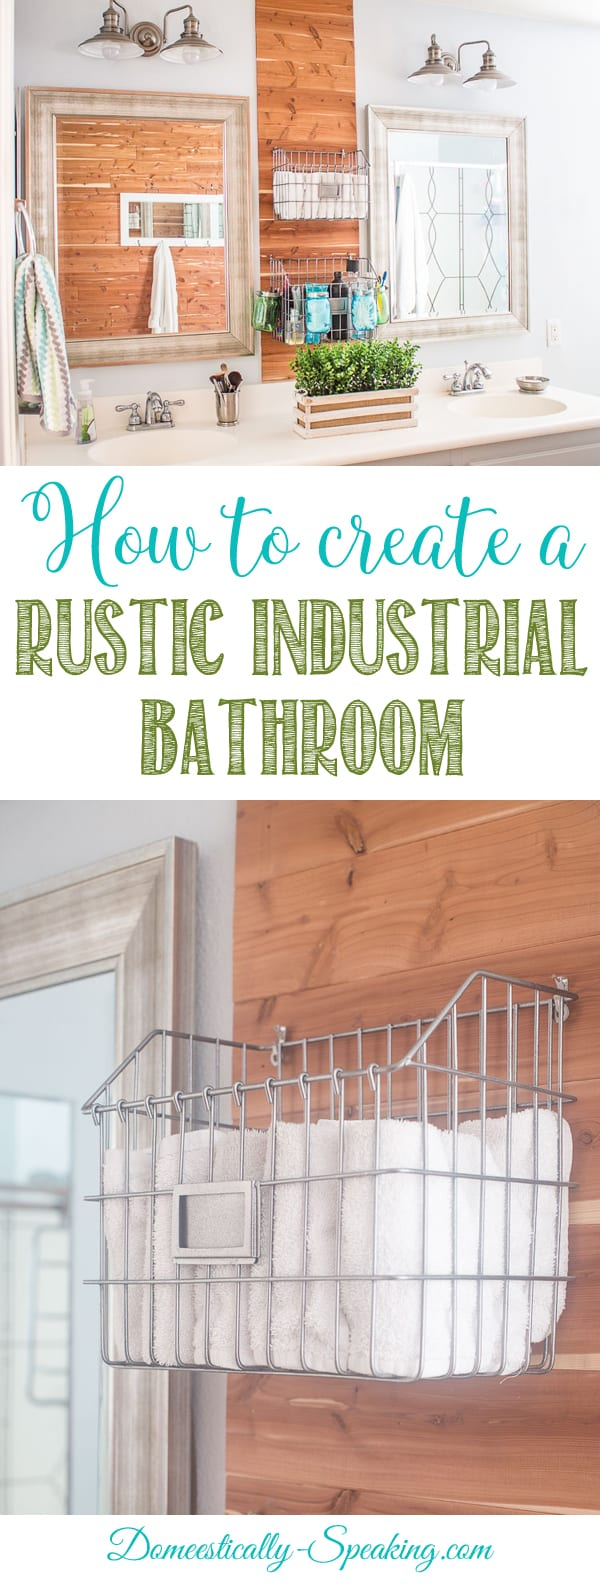 How to Create a Rustic Industrial Bathroom | Master Bathroom | Bathroom Decor | Farmhouse Bathroom